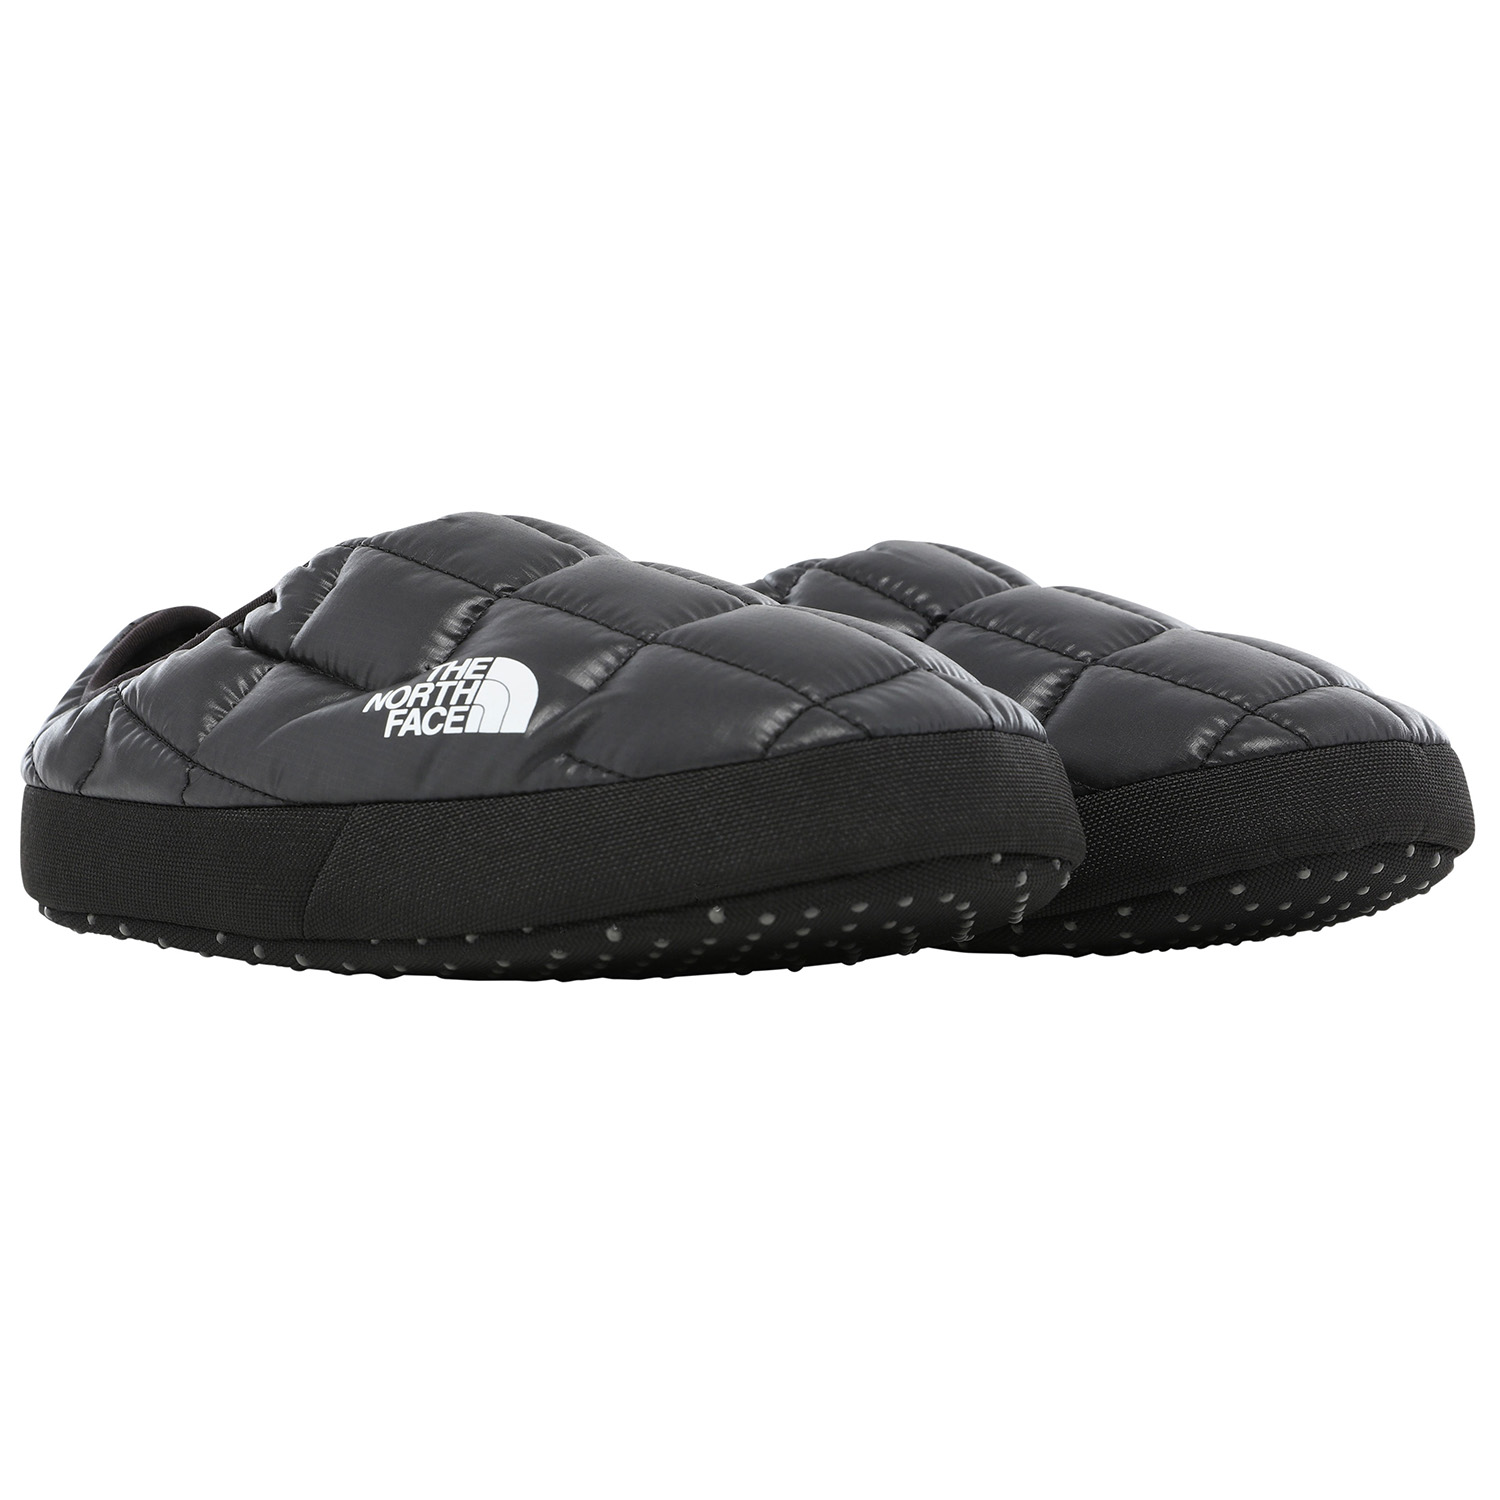 North Face Thermoball Tent Mule V